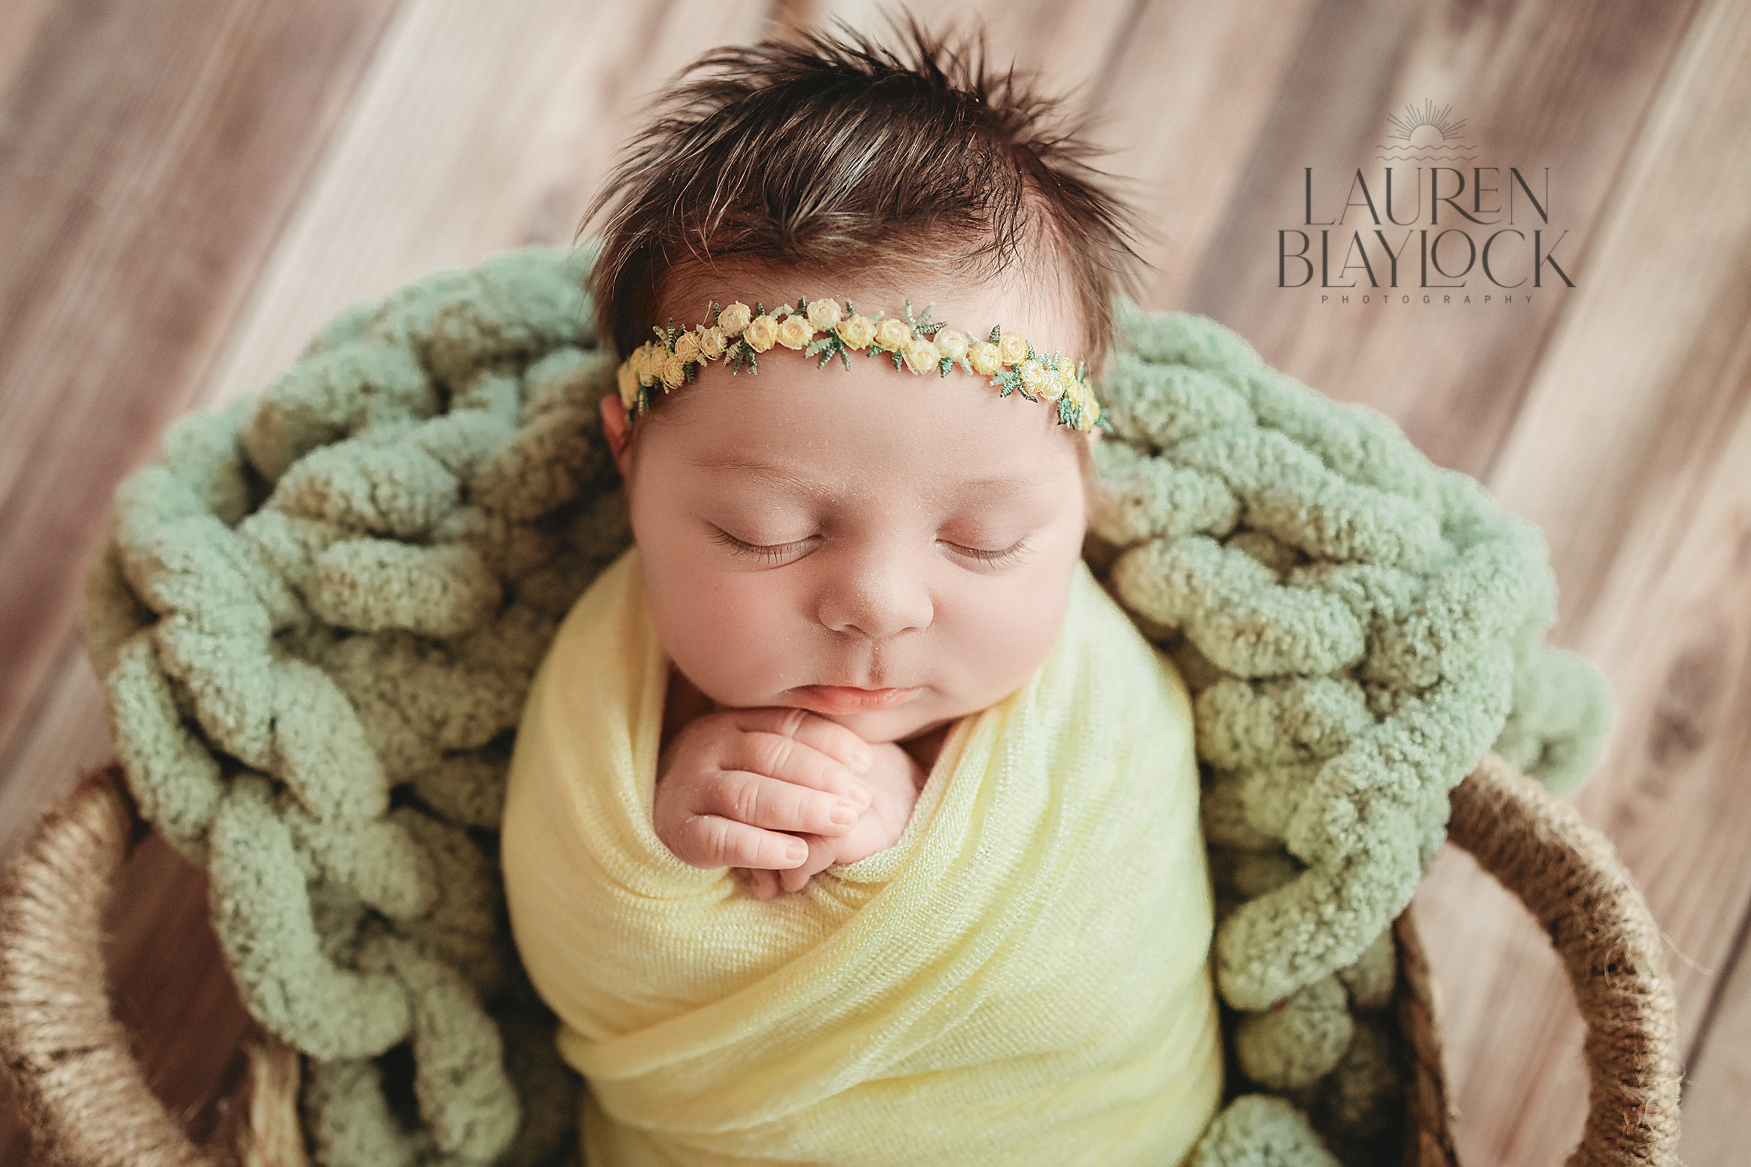 Newborn baby girl poses for Newborn Photographer Tampa. Author is discussing an why a custom newborn photography session is better than hospital newborn photos